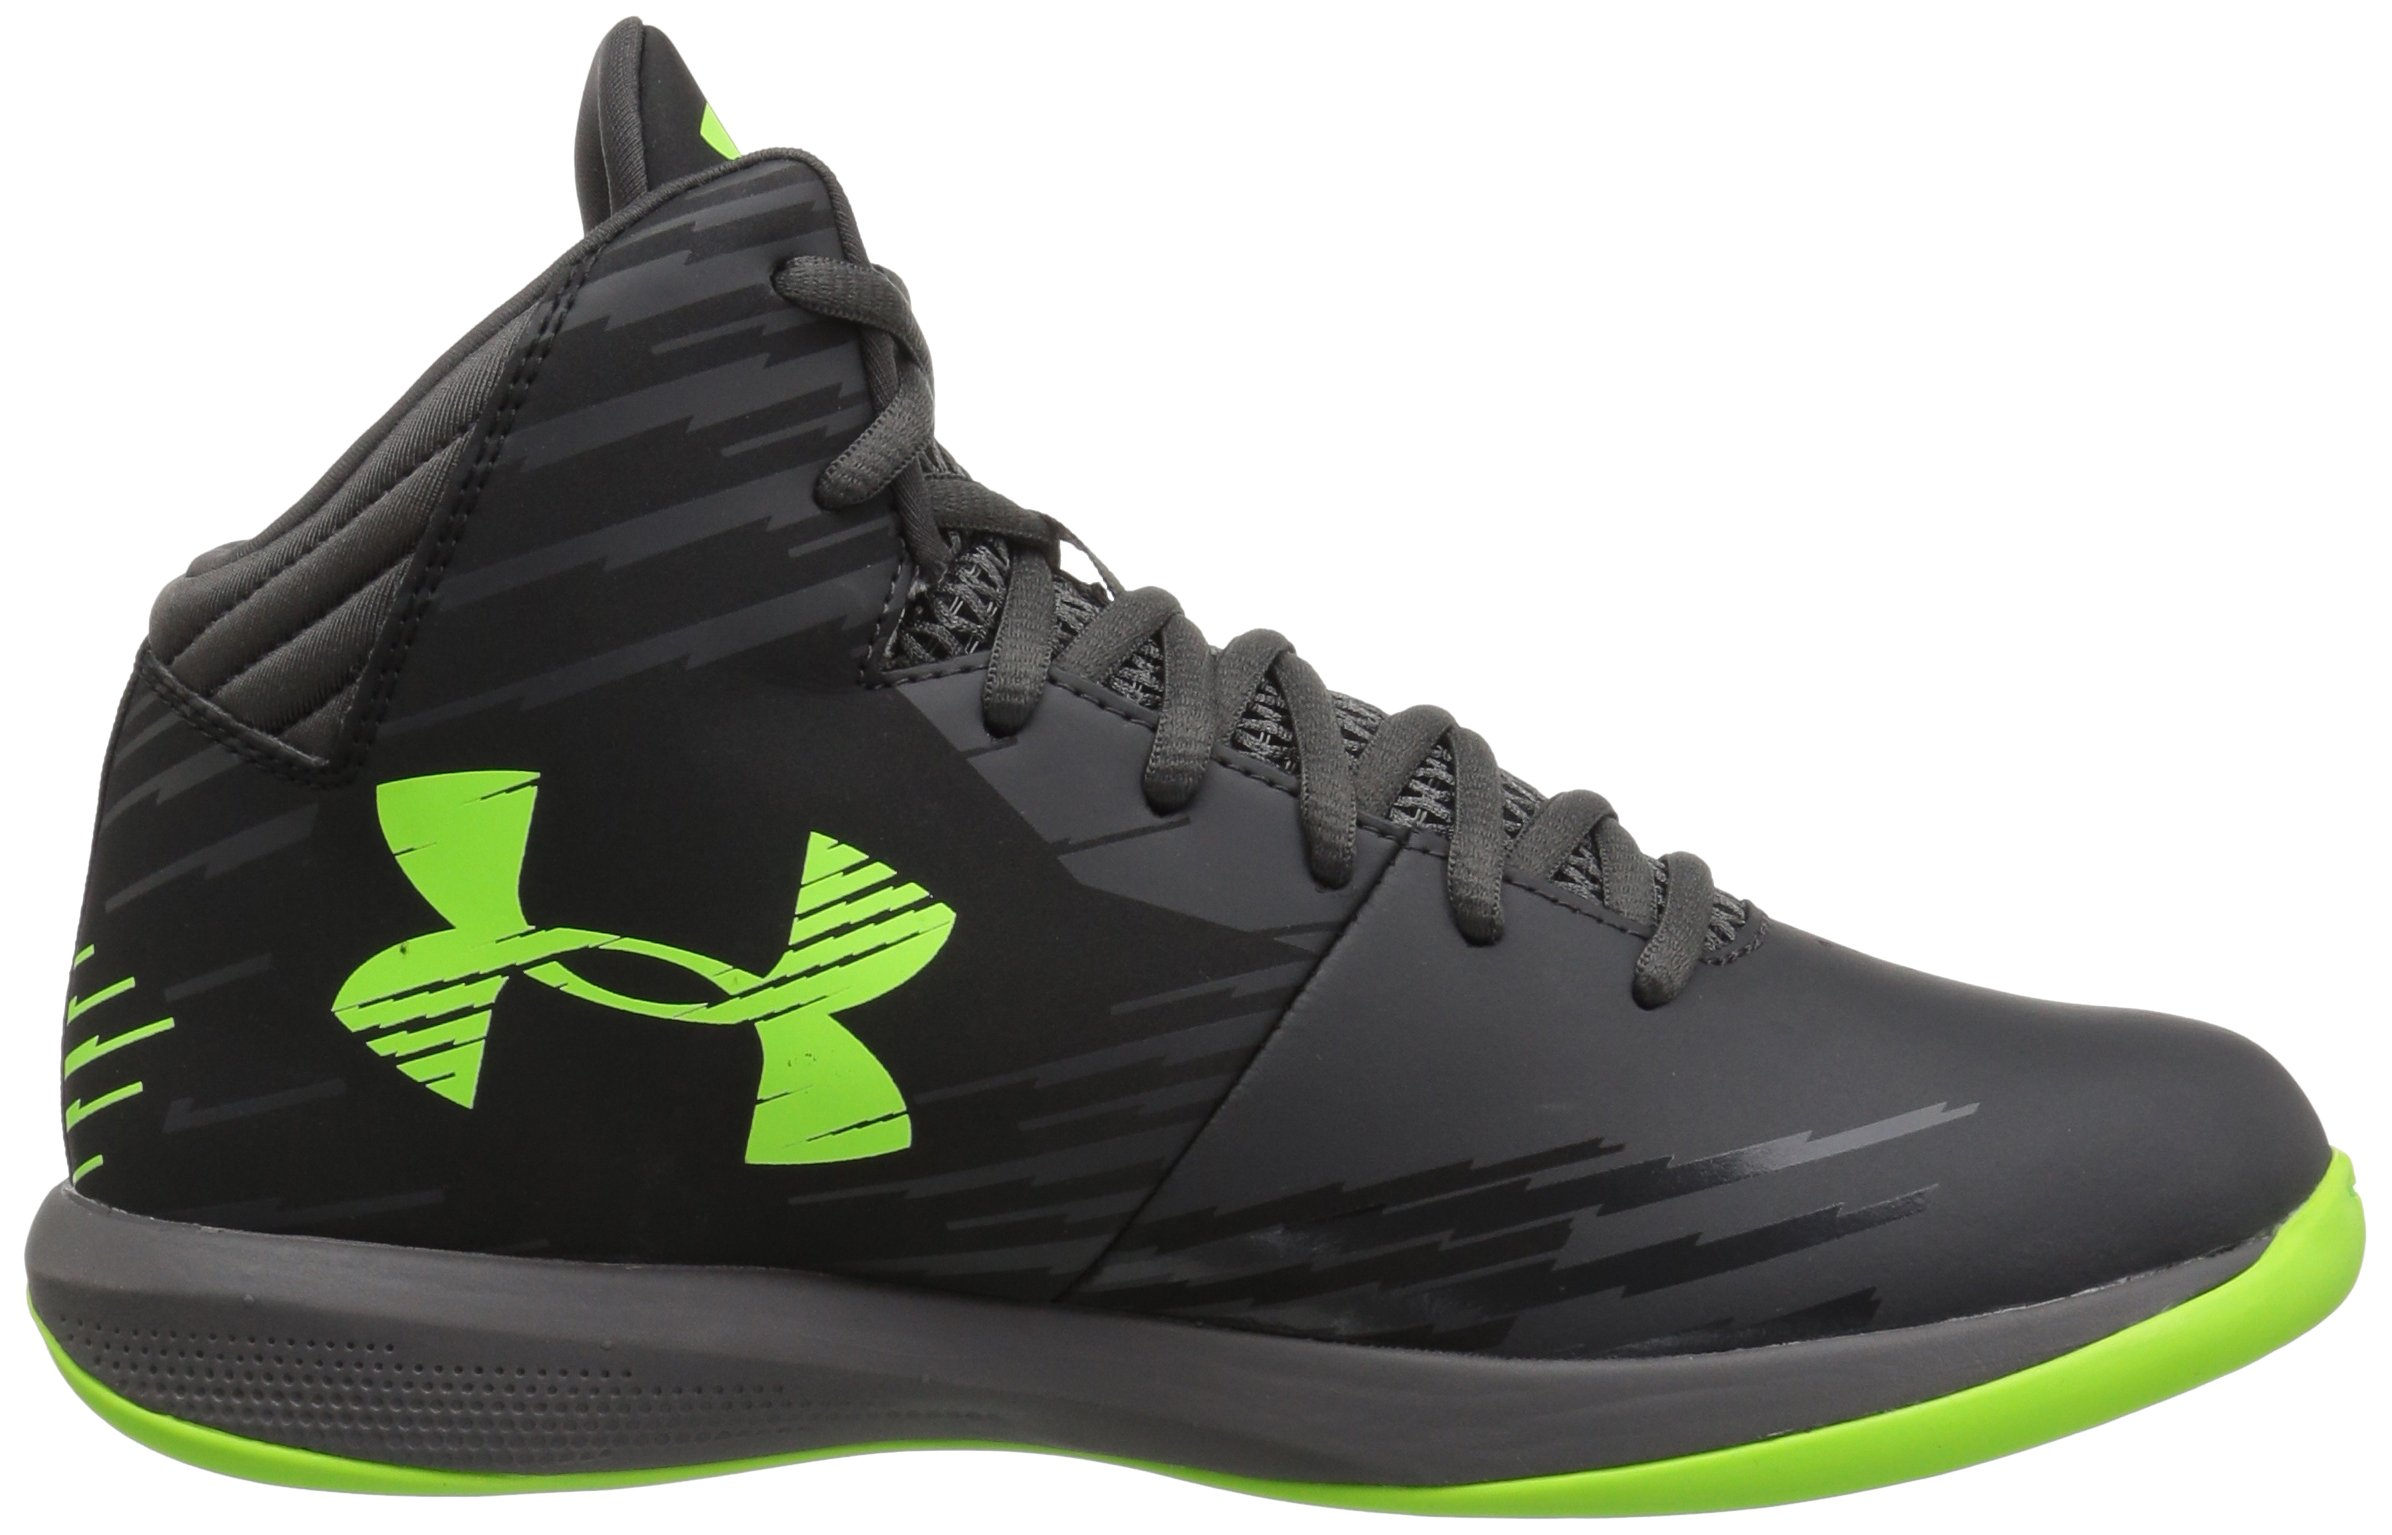 eaaf4d59874e Under Armour Boys  Grade School Jet Mid K Basketball Shoe